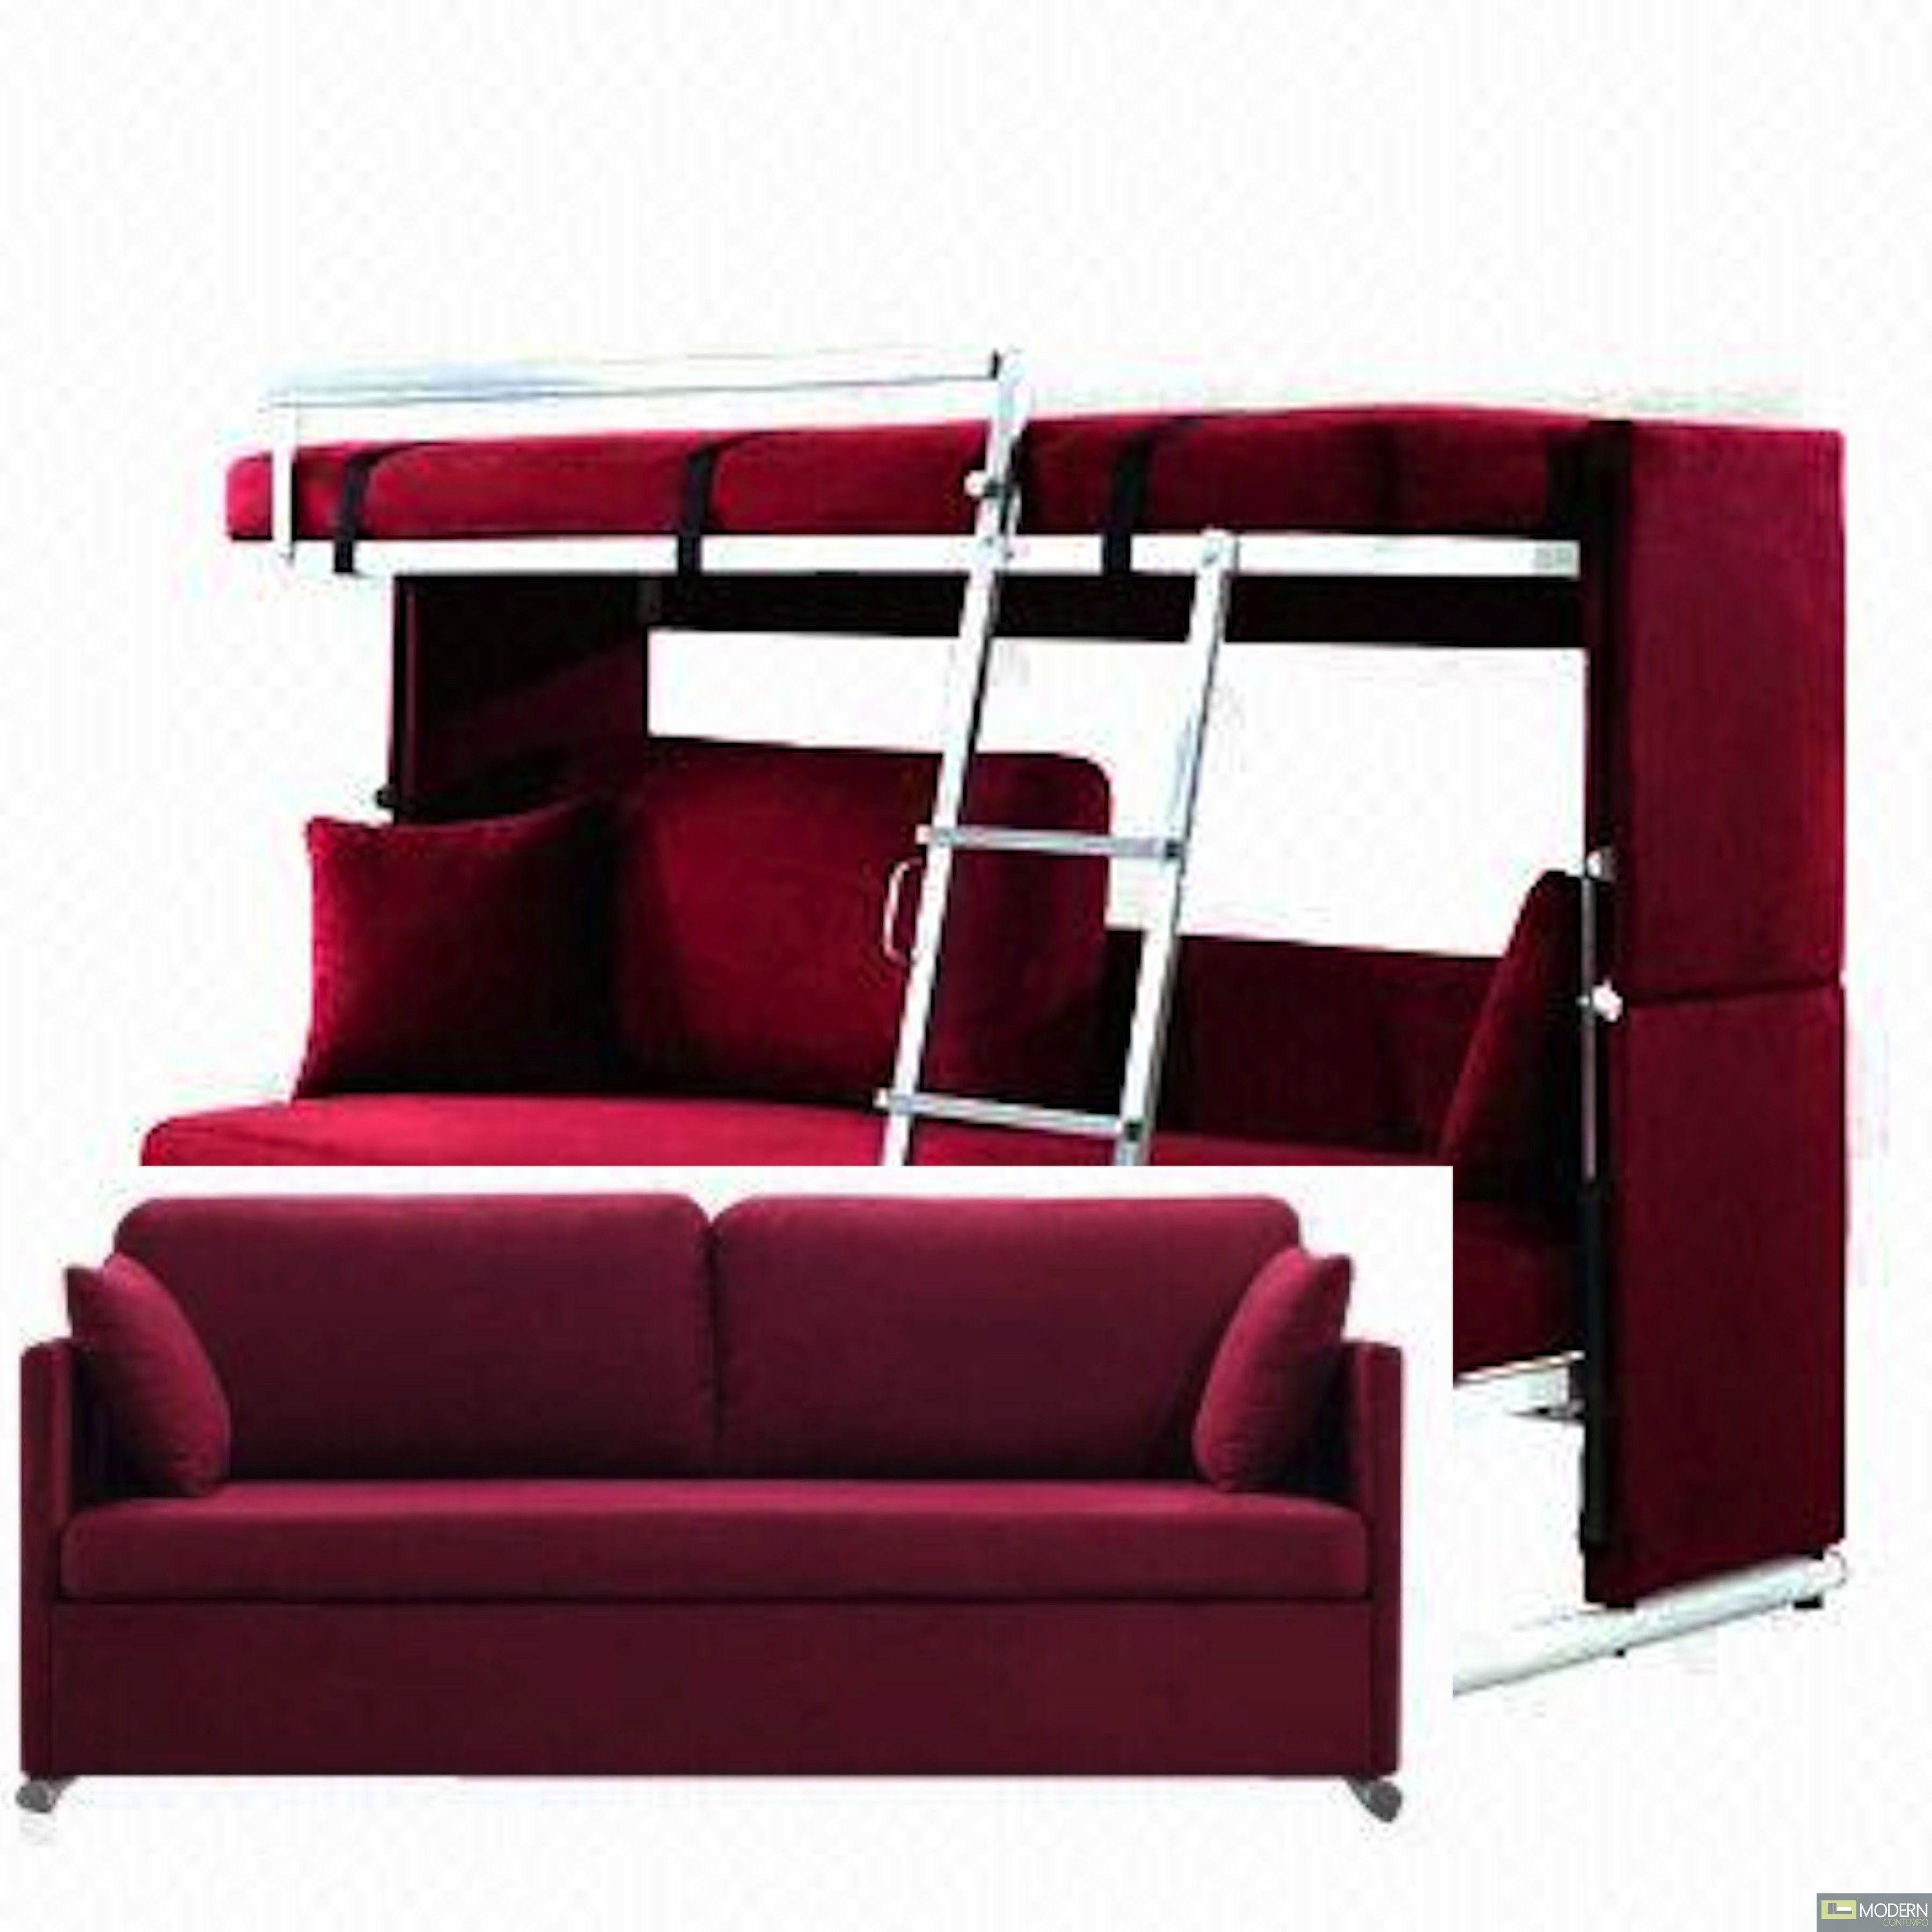 Chair That Converts To A Bed Alana Modern Convertible Sofa Converts To Bunk Bed For